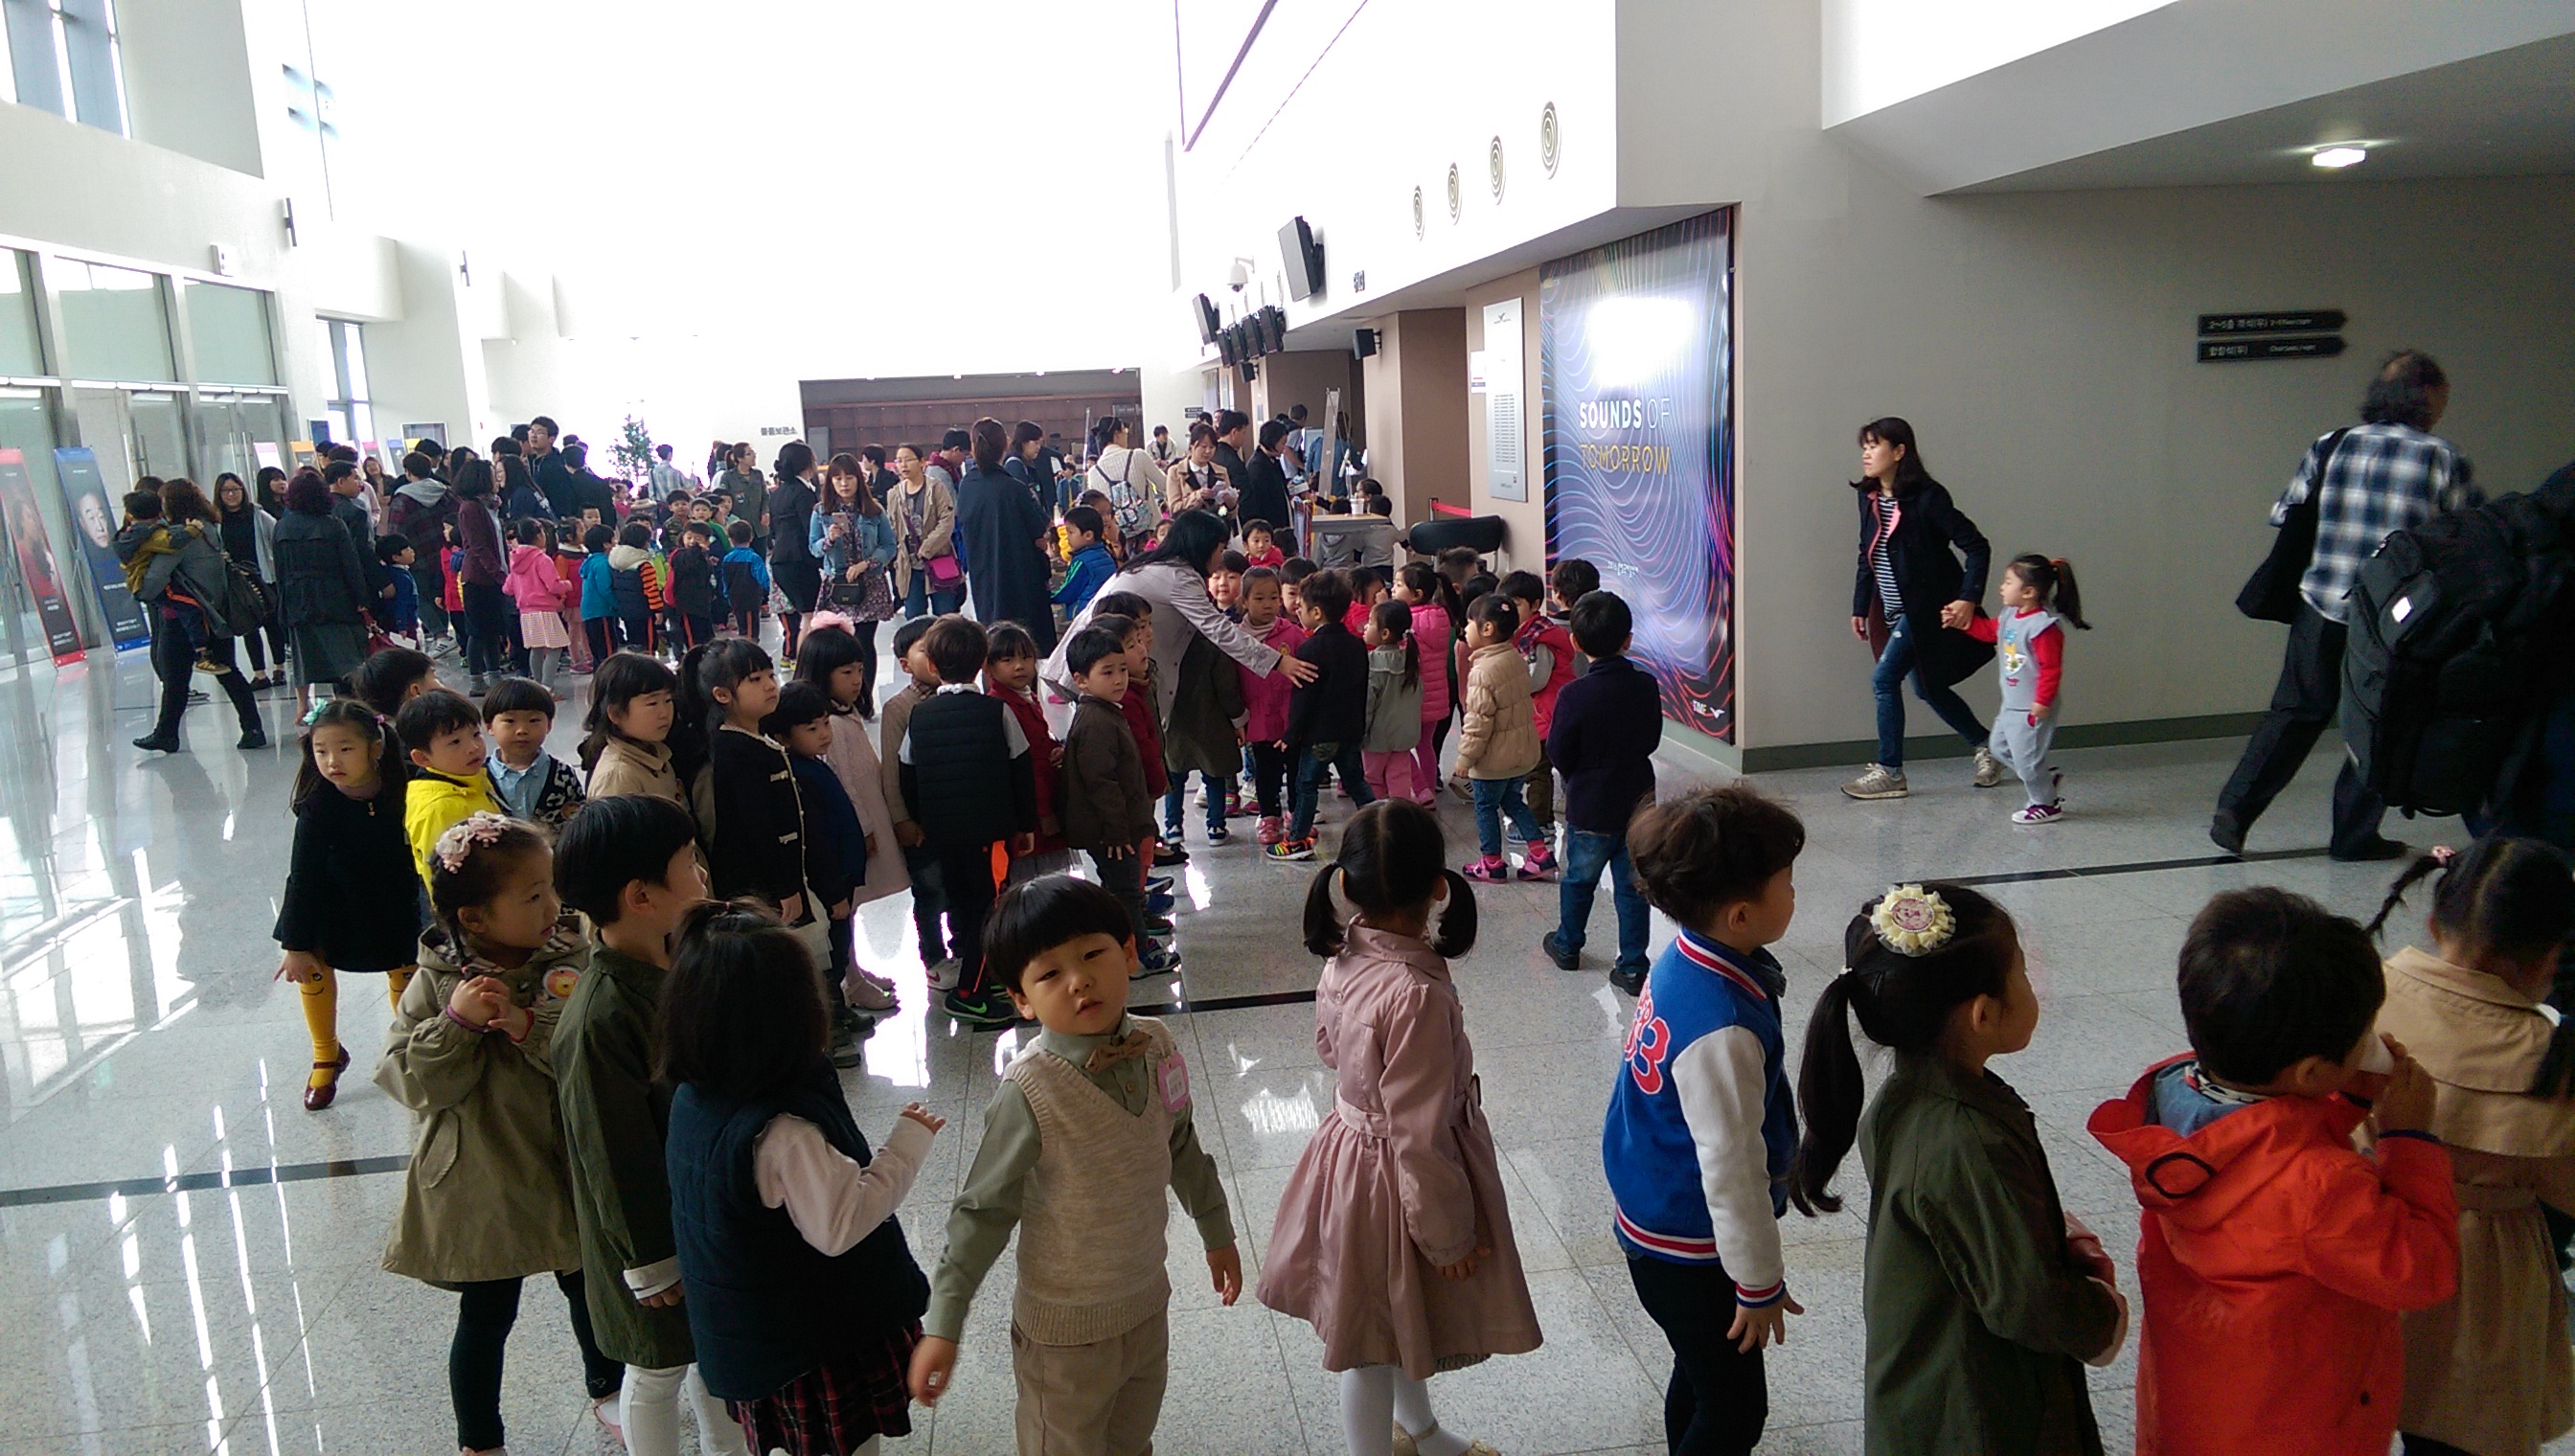 Korean children lining up inside the lobby of the TIMF Concert Hall.